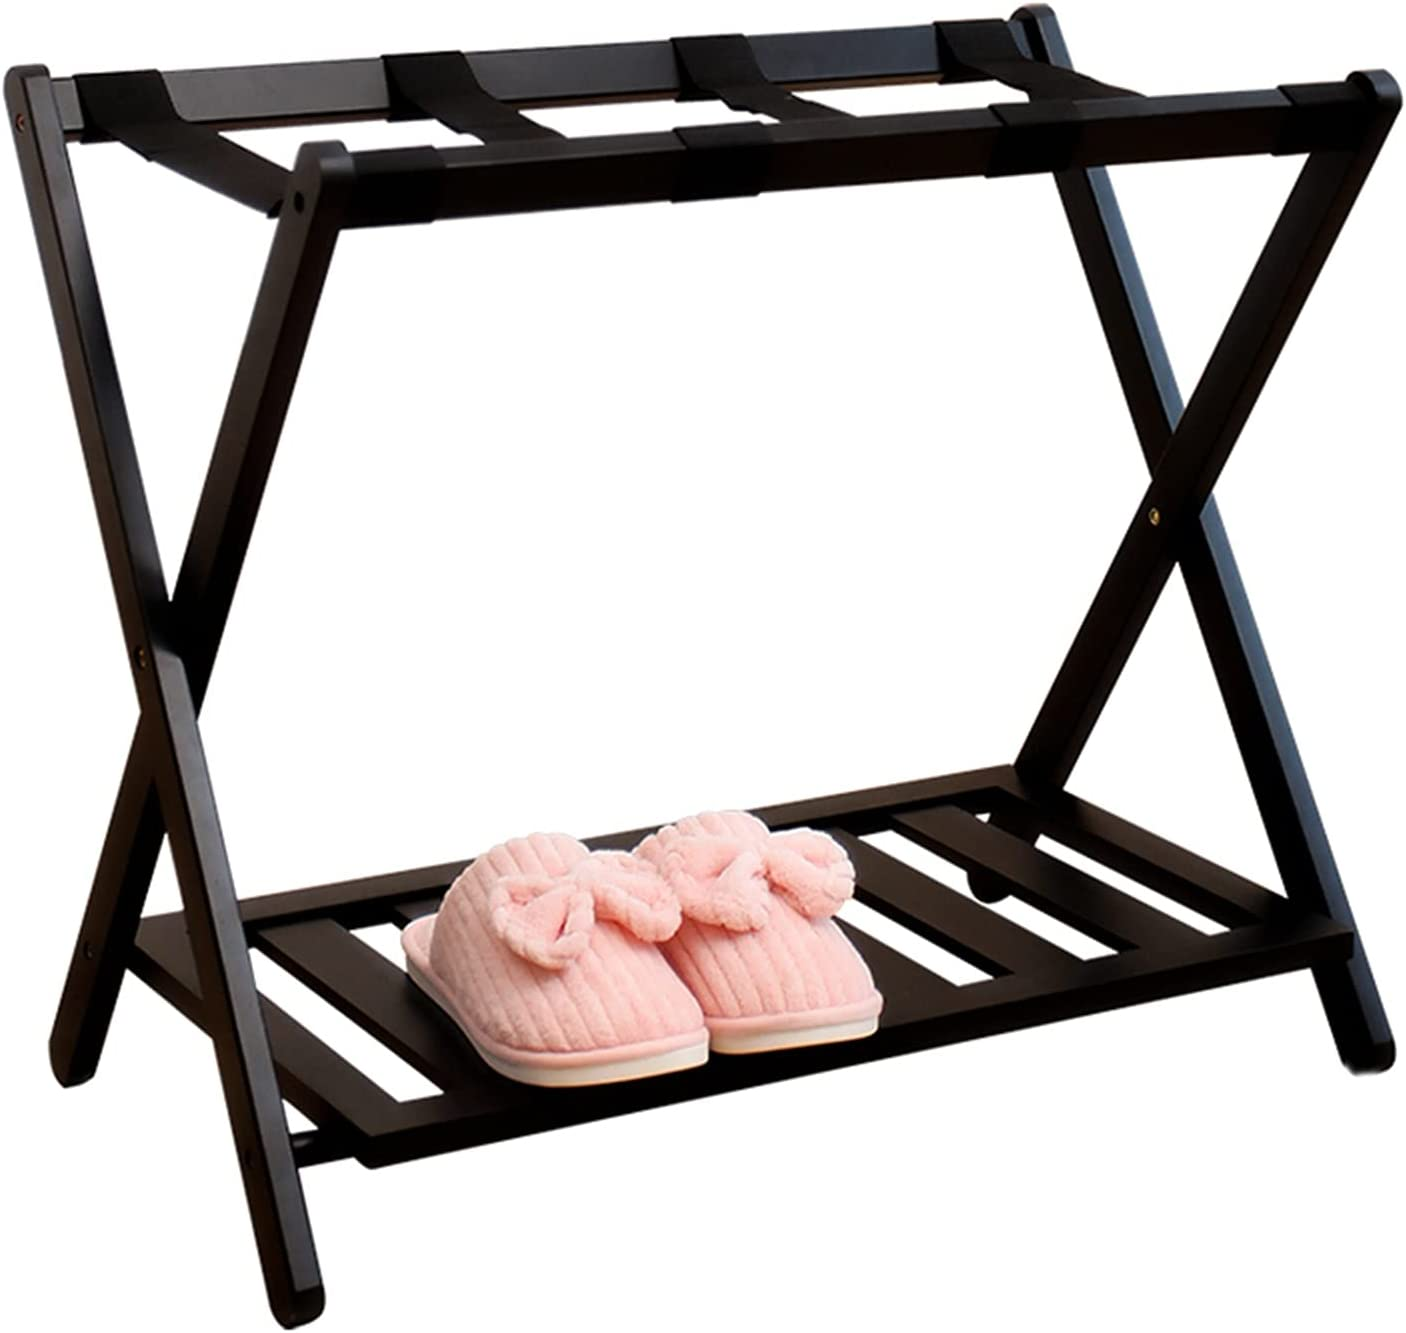 Don't miss the campaign Premium Quality Classic Sale special price Luggage Rack Solid in Crafted Hardwood -